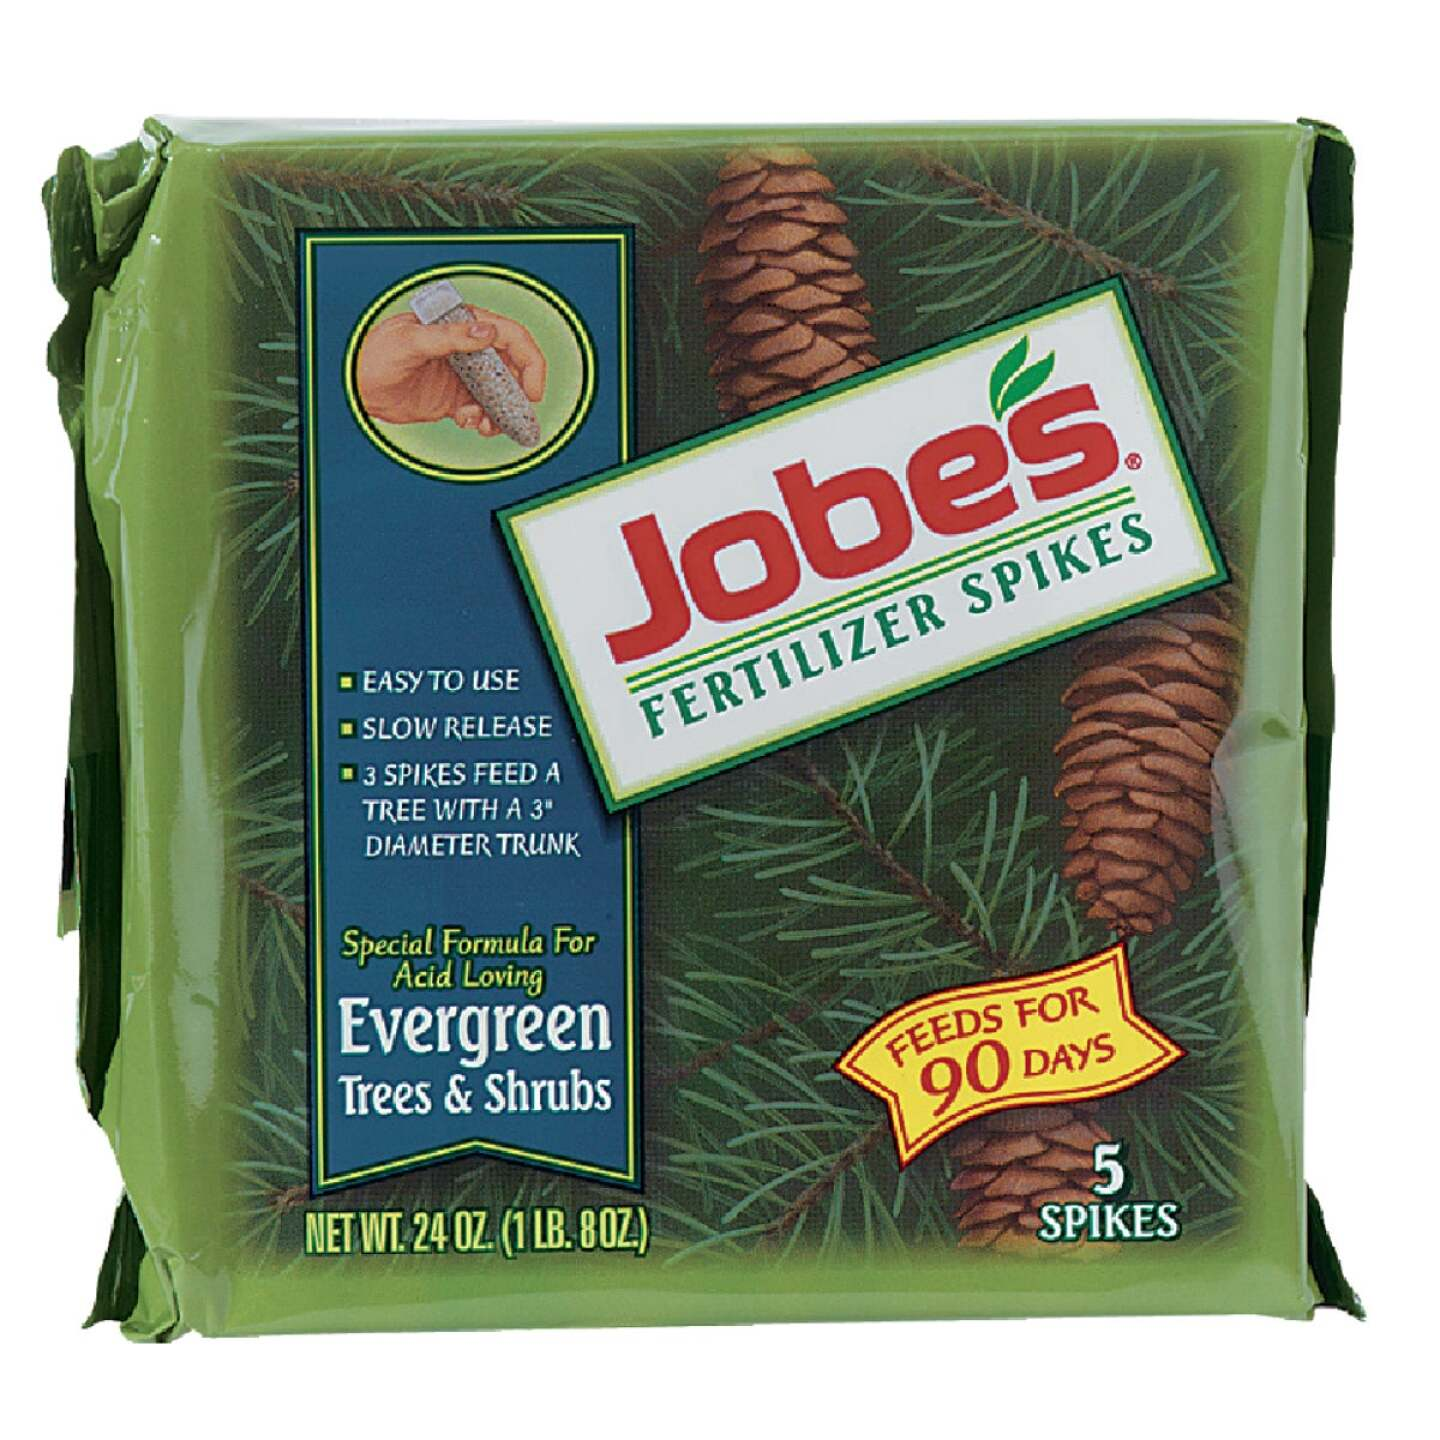 Jobe's Evergreen 13-3-4 Tree & Shrub Fertilizer Spikes (5-Pack) Image 1